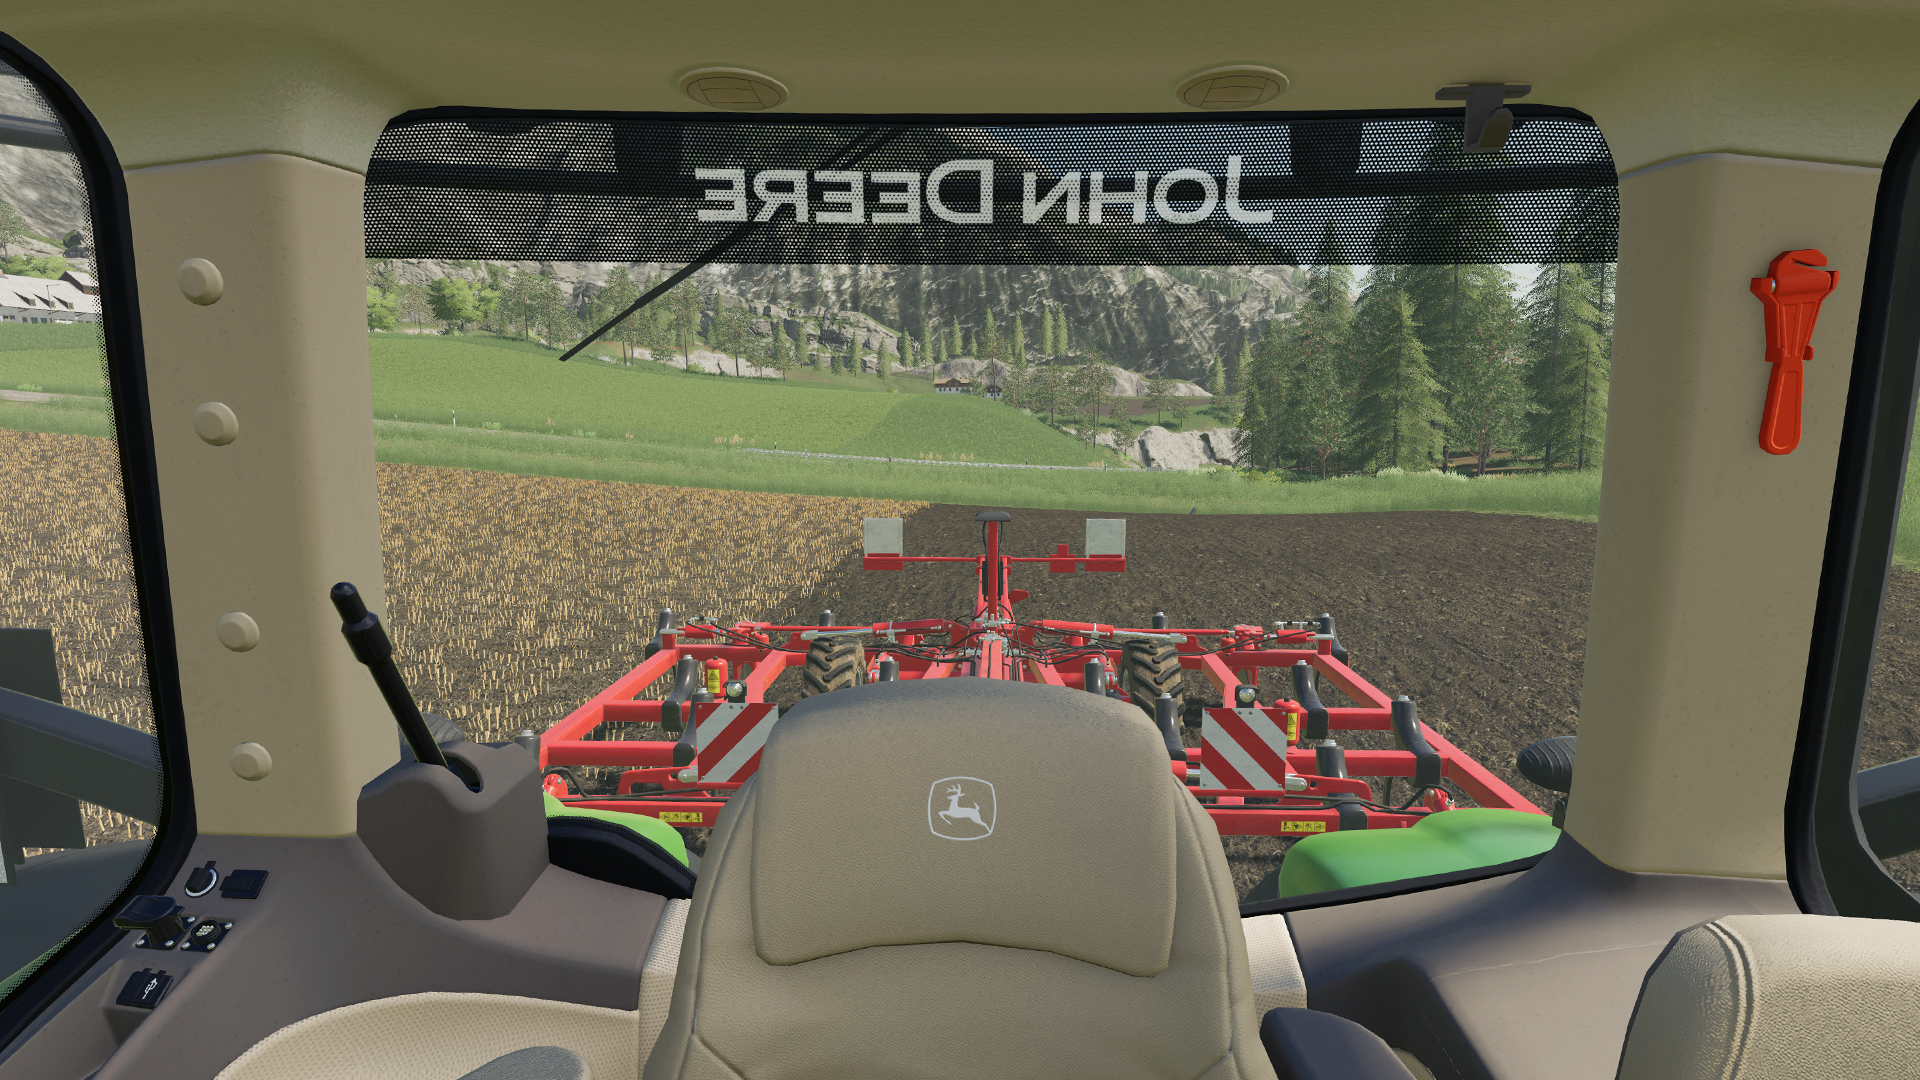 Farming Simulator John Deere 8R tractor. Virtual background to use on Zoom, Microsoft Teams, Skype, Google Meet, WebEx or any other compatible app.